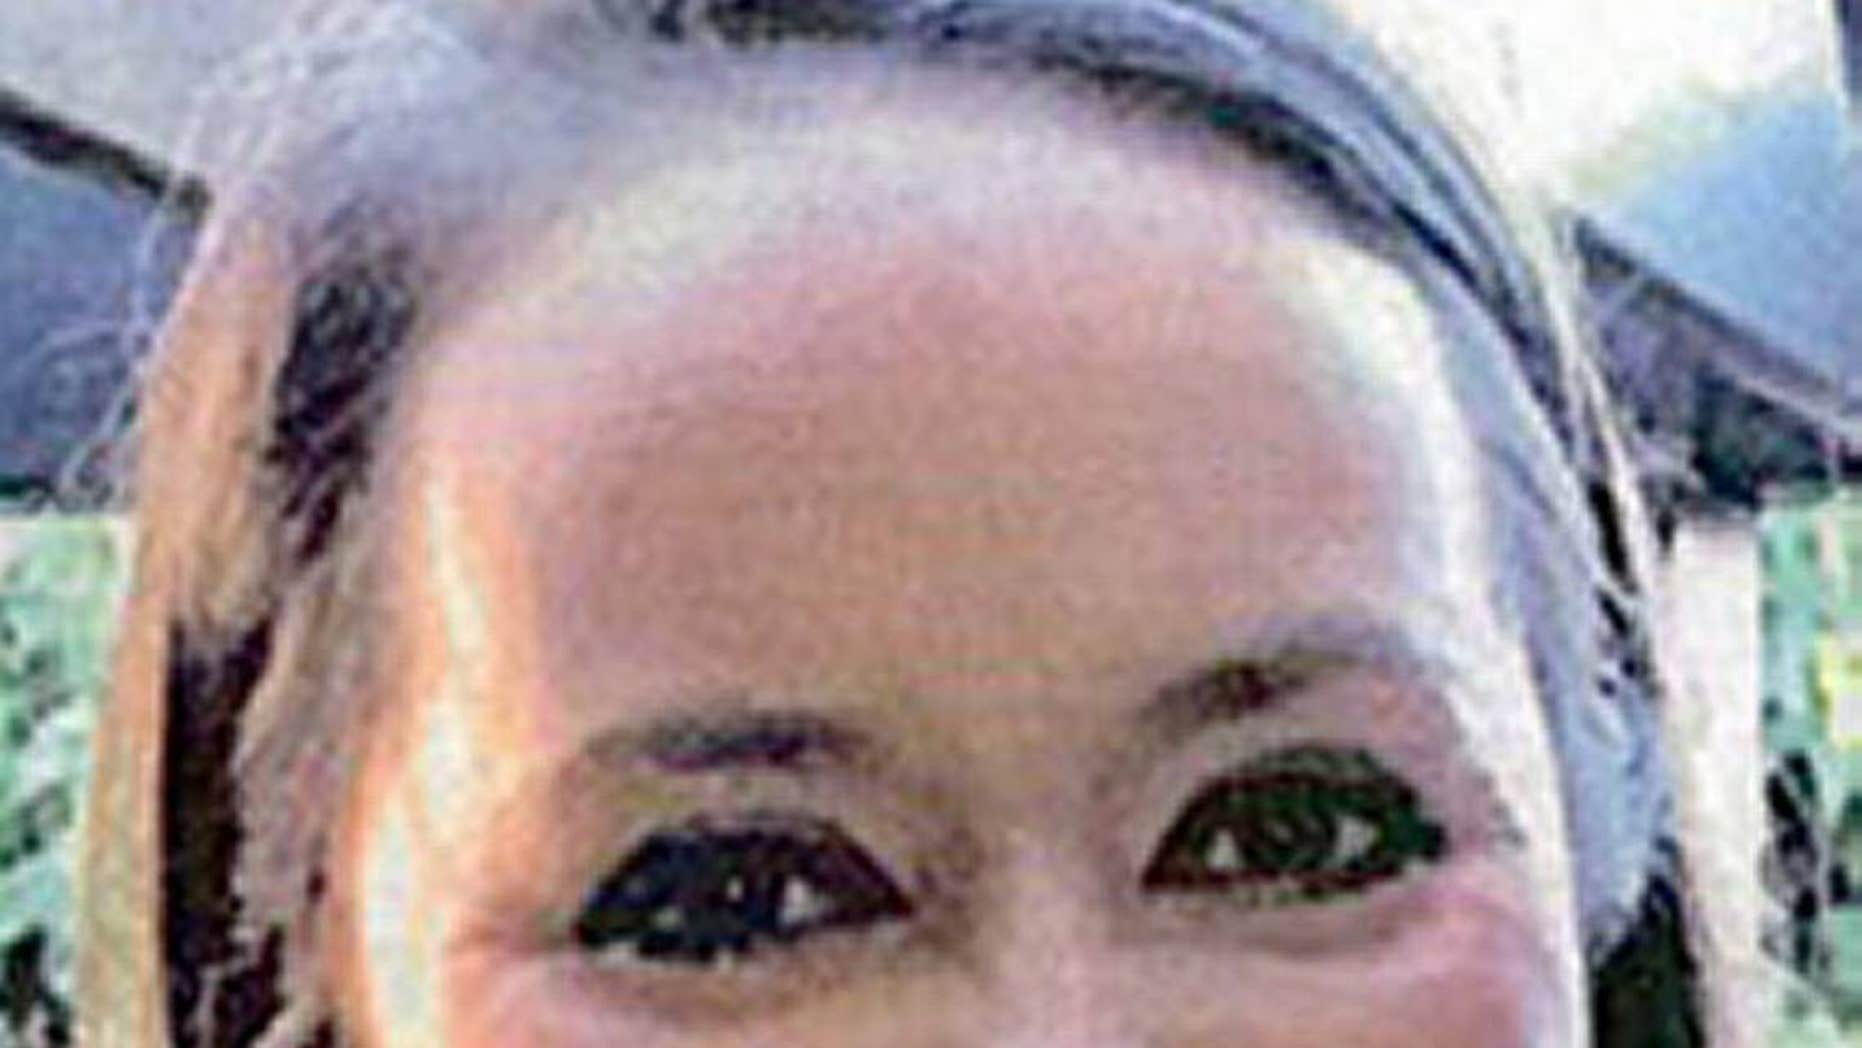 Jamie Tull has been missing since Monday, when she got into a car accident in California.